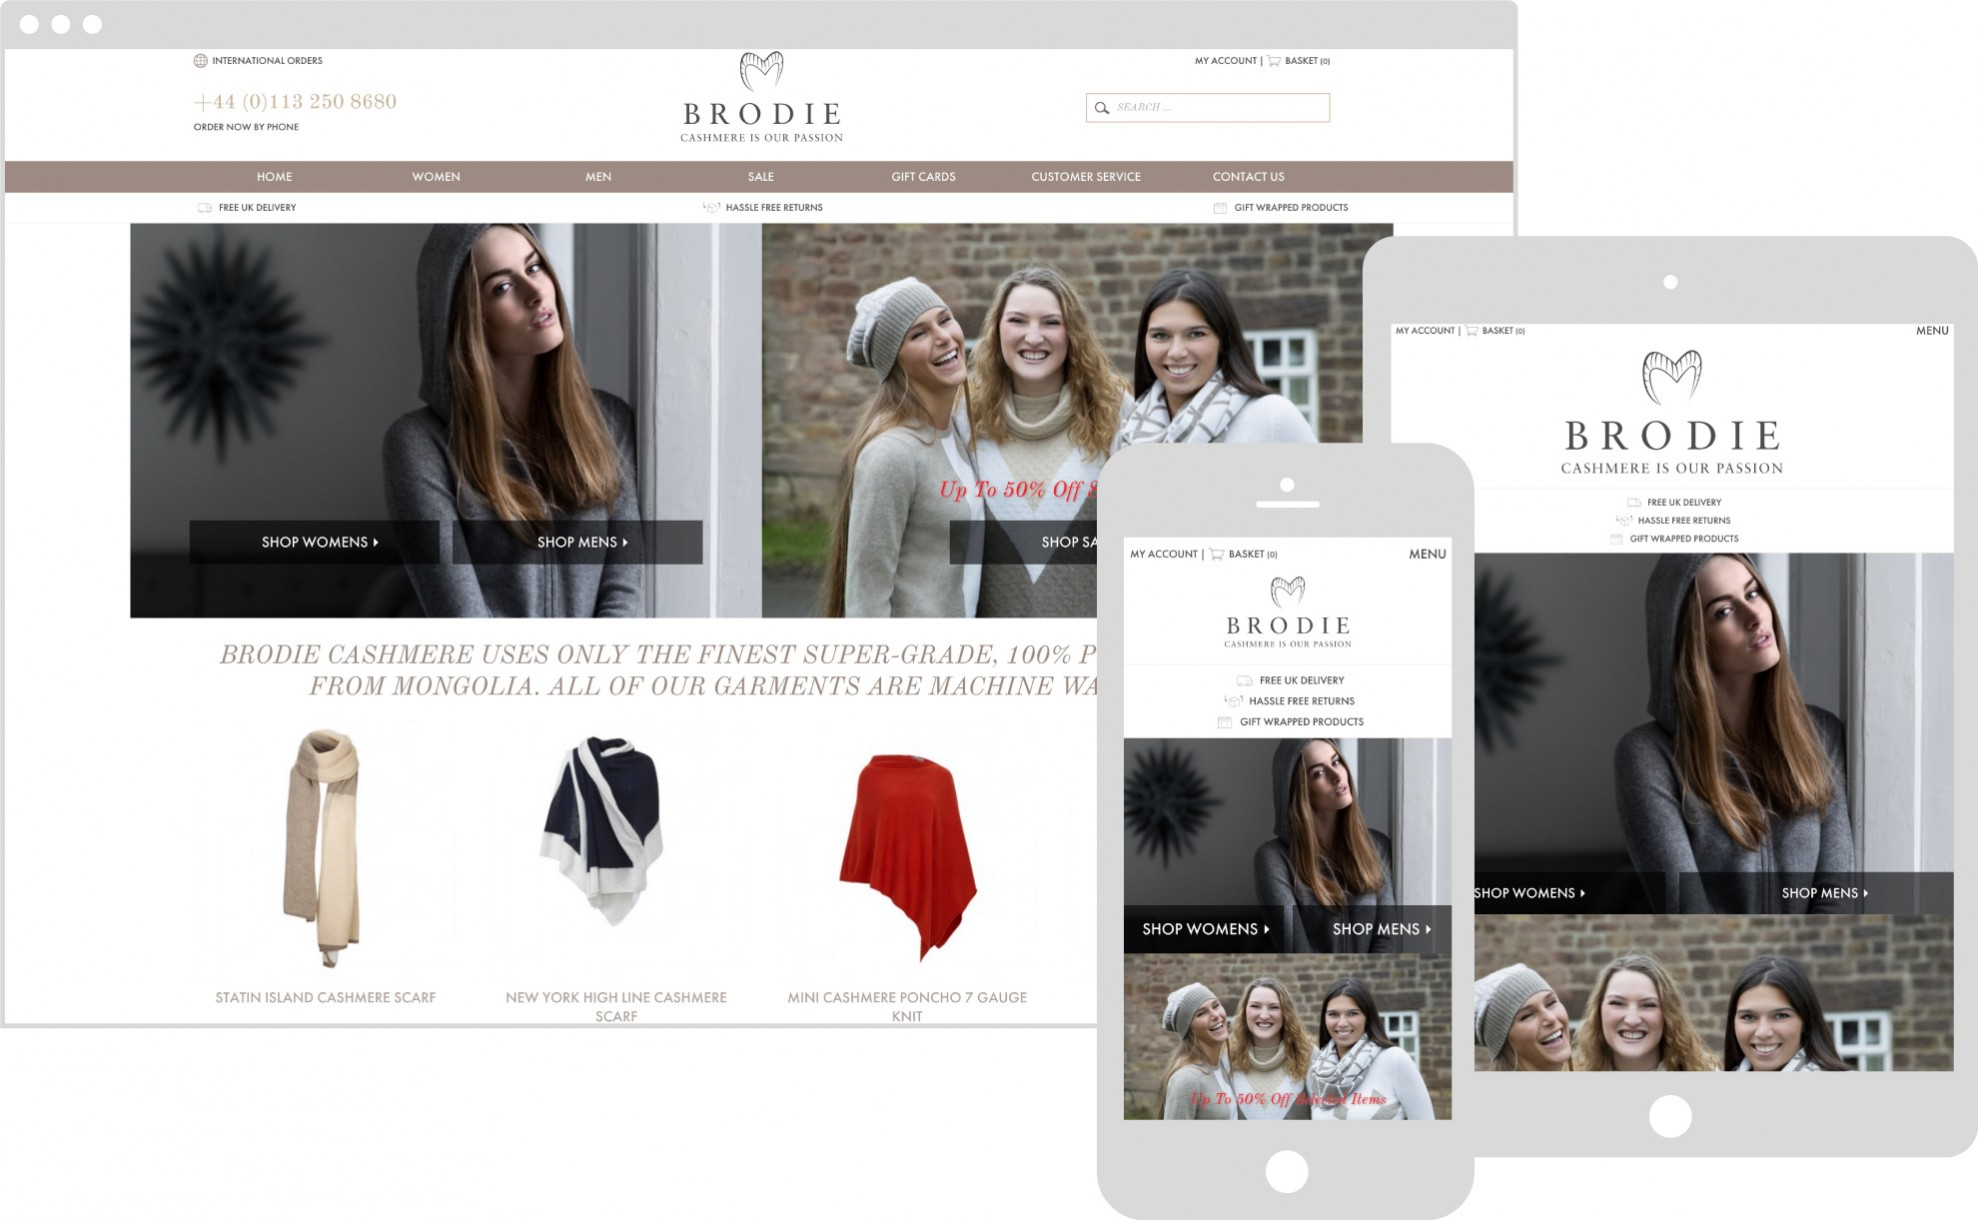 brodie cashmere on multiple devices, ipad iphone and desktop